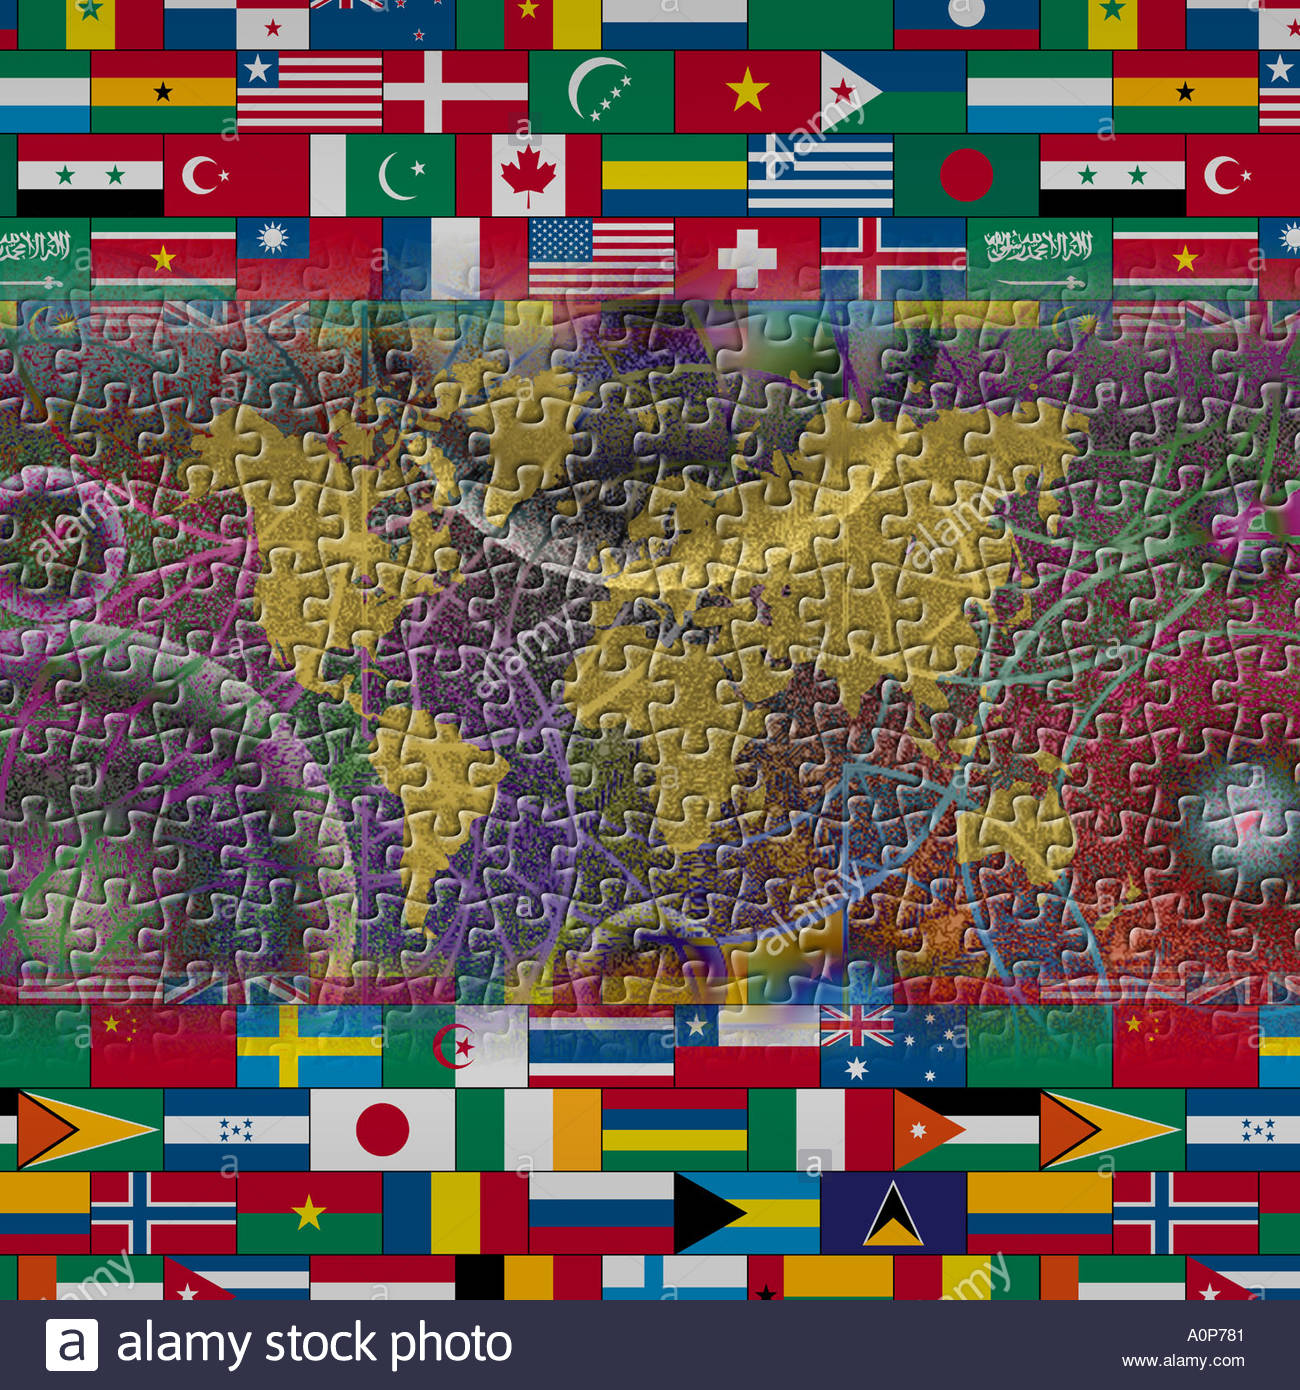 Jig saw puzzle patterned world map with flags above and below jig saw puzzle patterned world map with flags above and below gumiabroncs Choice Image